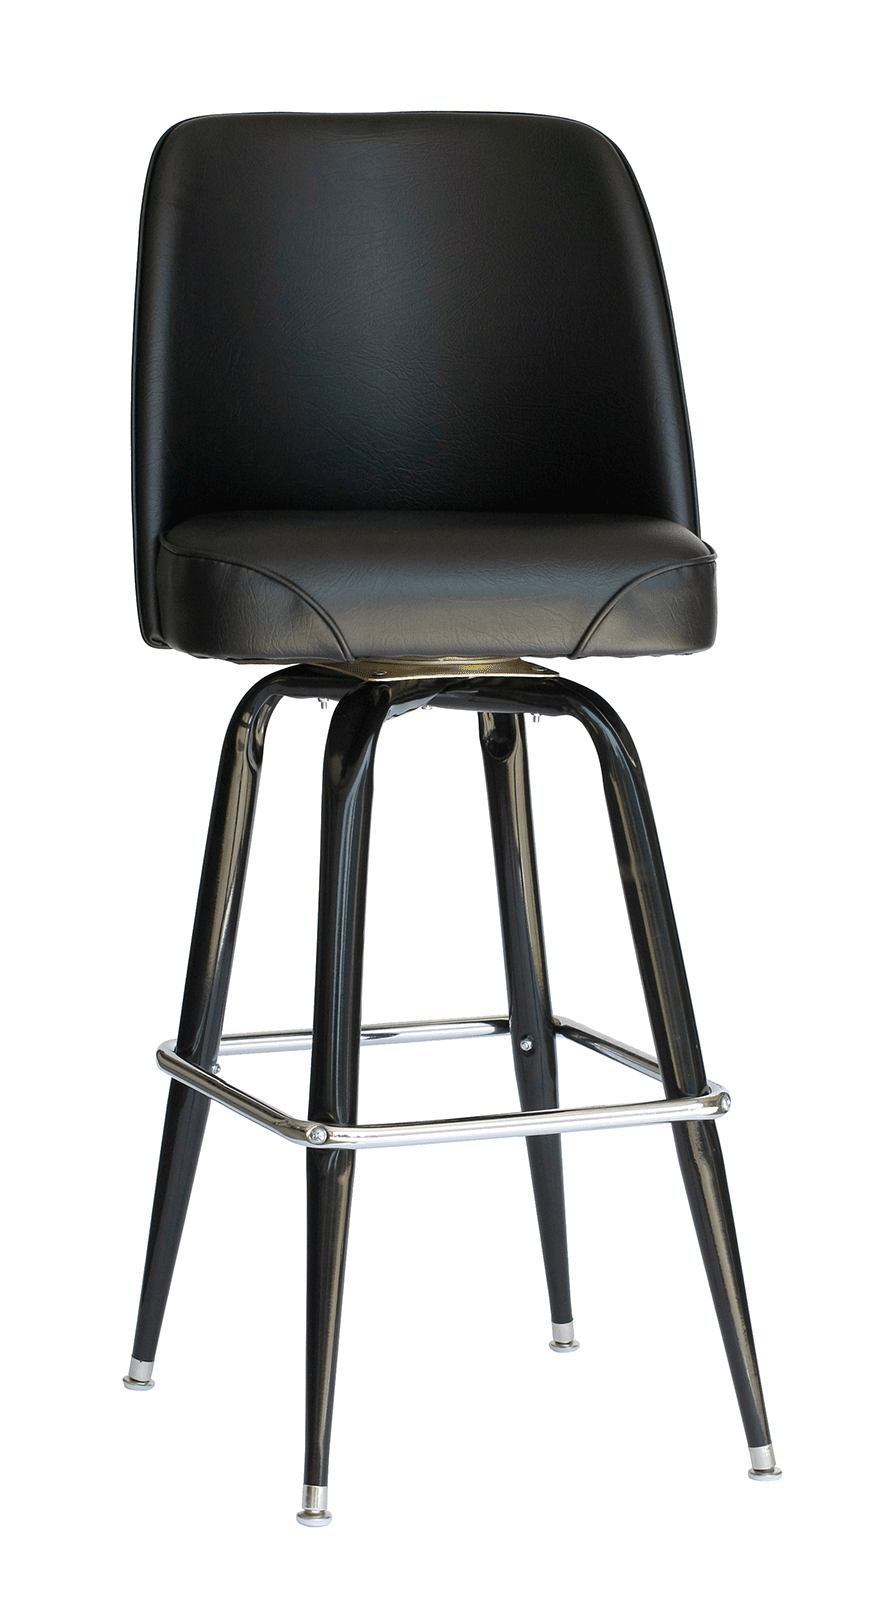 BFM Exton Indoor Restaurant Large Bucket Barstool